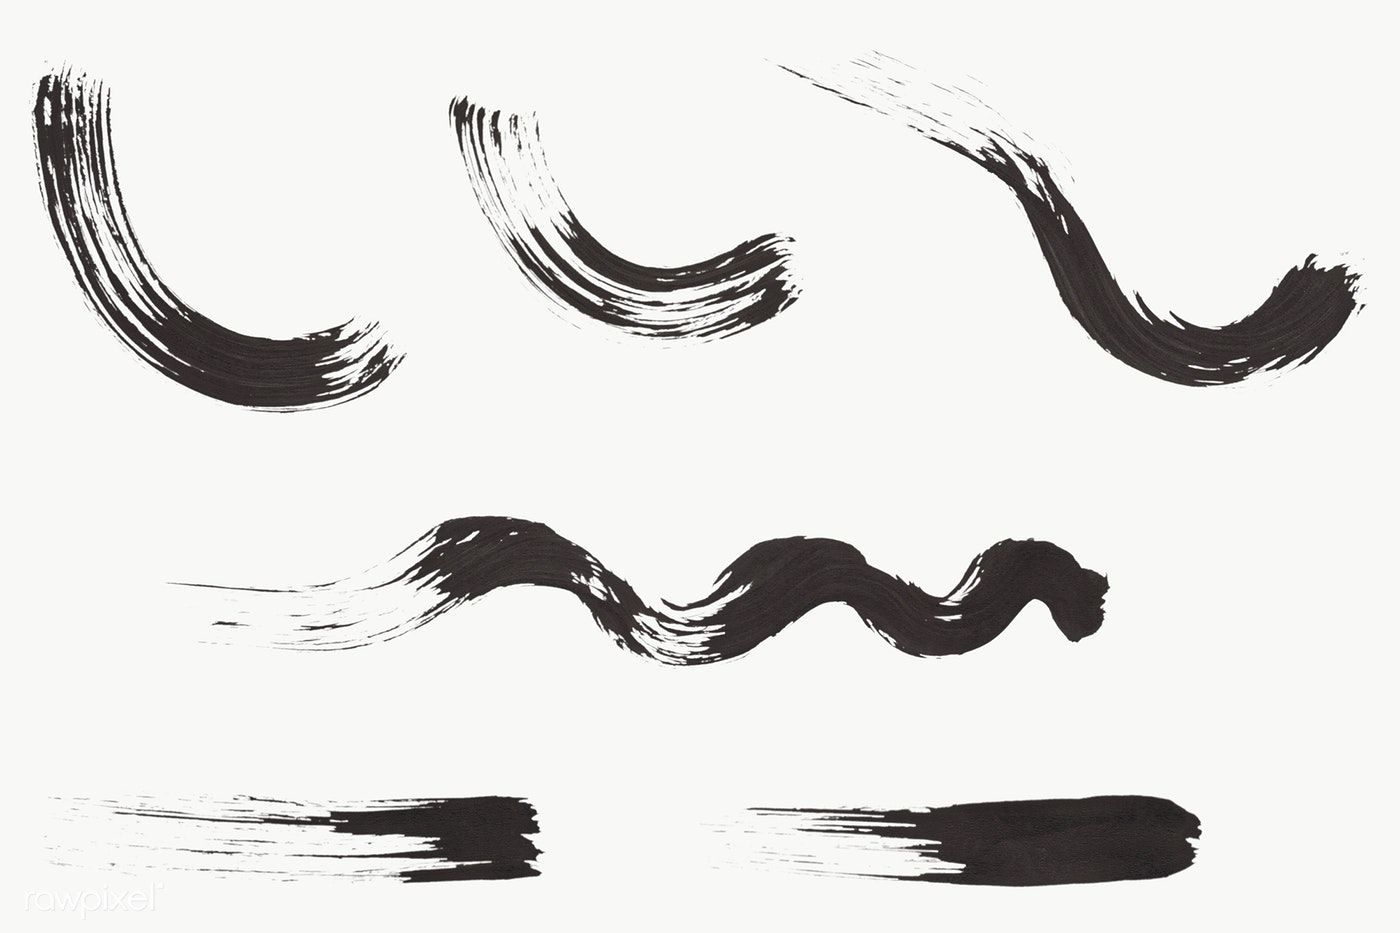 Abstract Black Brush Stroke Set Transparent Png Free Image By Rawpixel Com Brush Strokes Abstract Paint Strokes